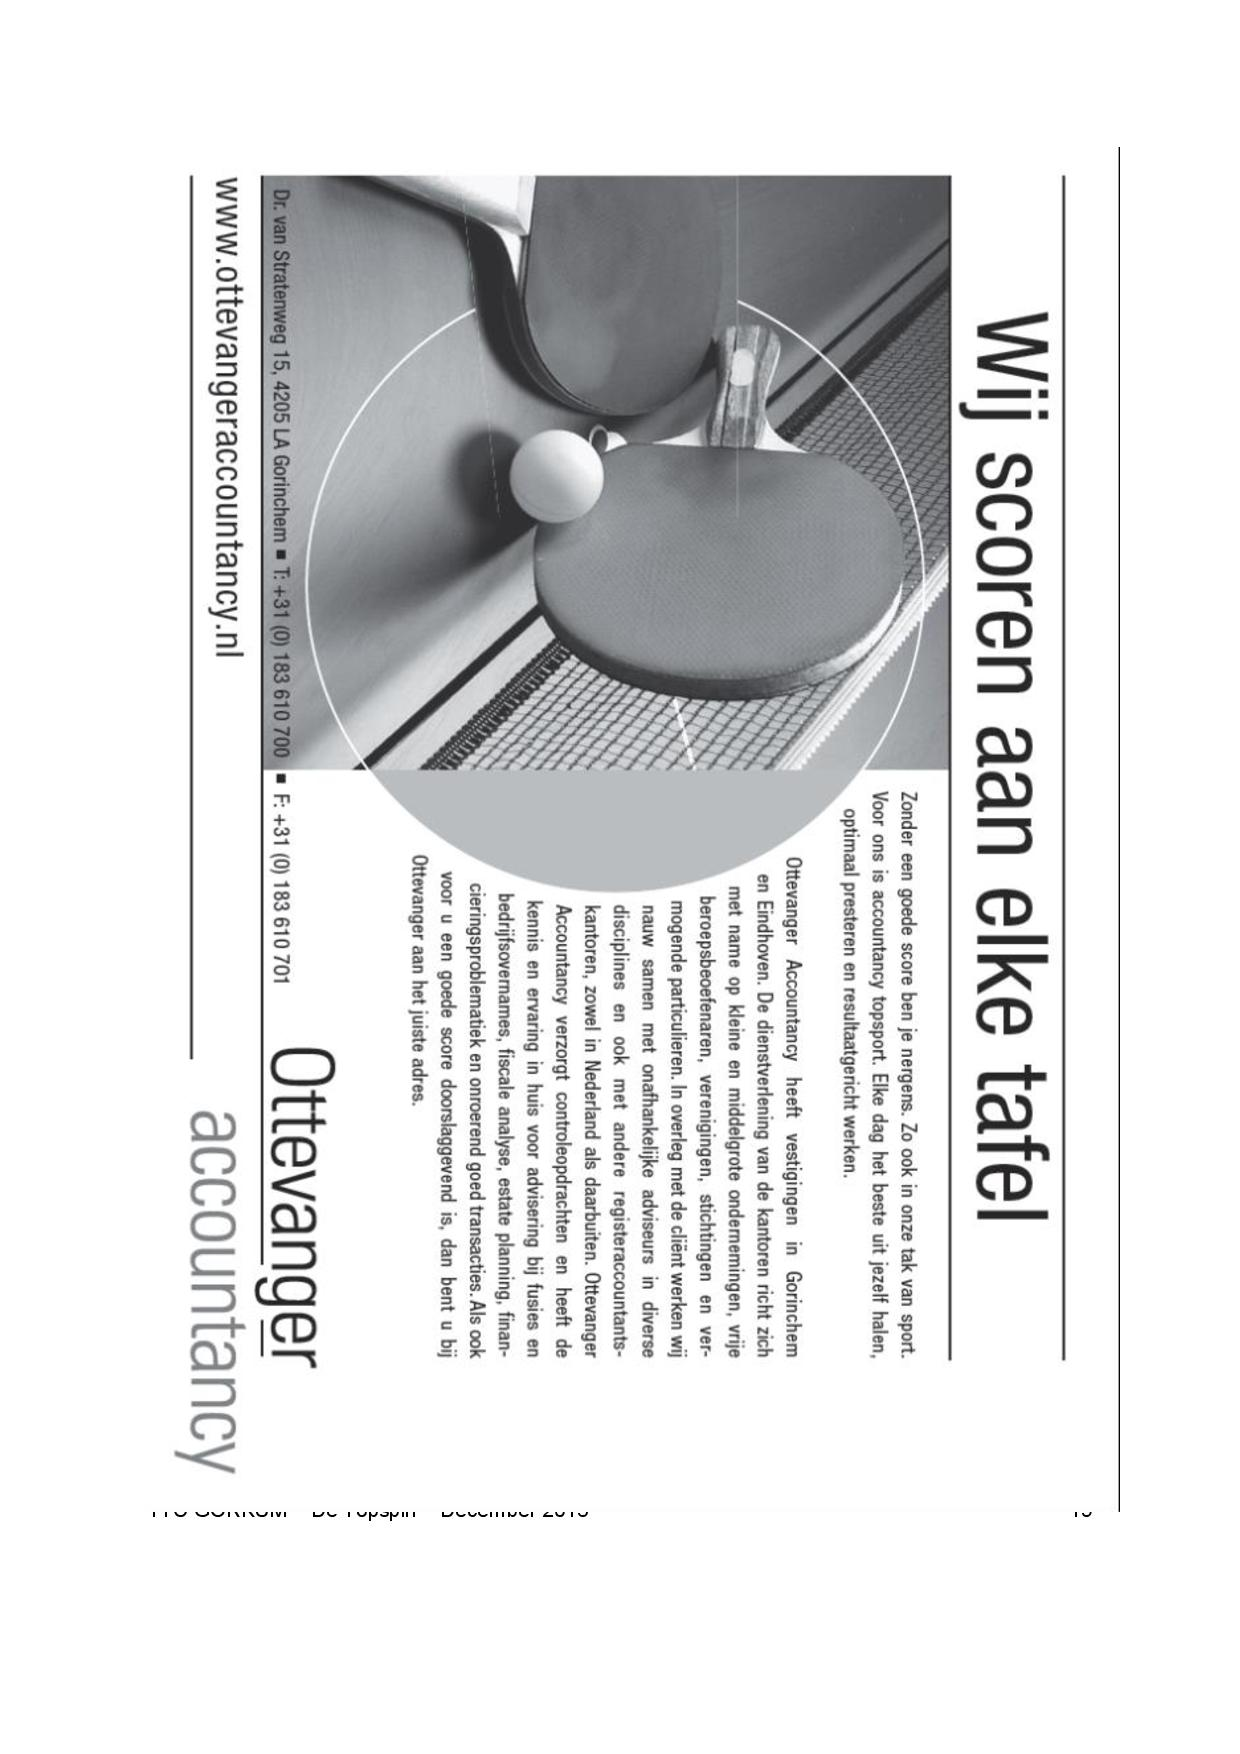 Topspin-2013-December-page-019